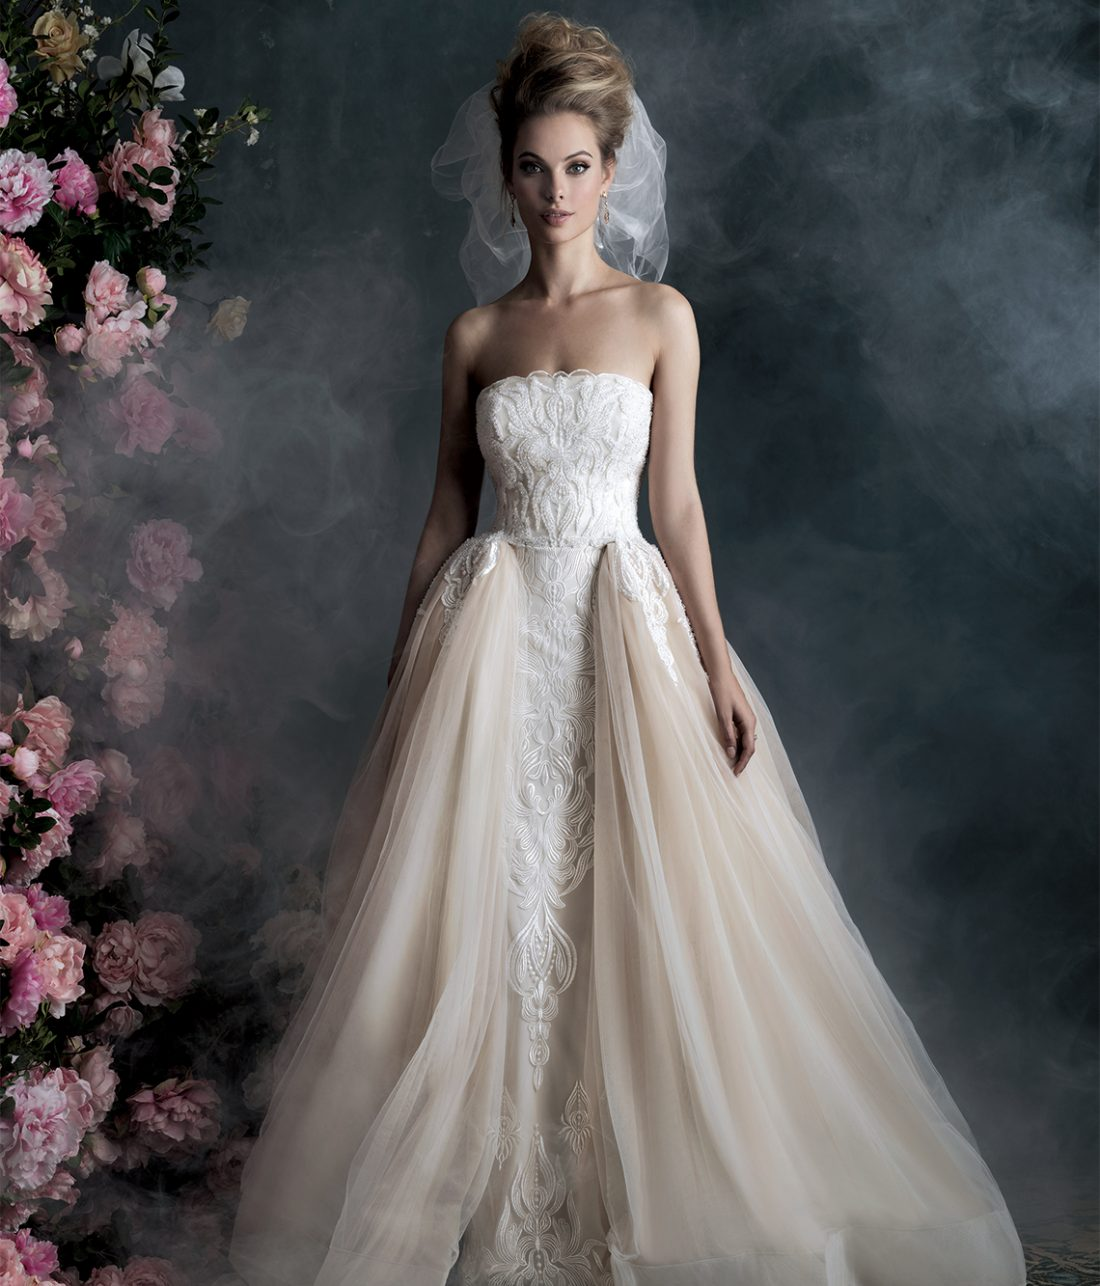 Allure Couture Style C400 | The elegant sweep of this layered ball gown is richened by delicate embroidery. $3,260, Claire's Fashions, Wilmington, Del., www.clairesfashions.net